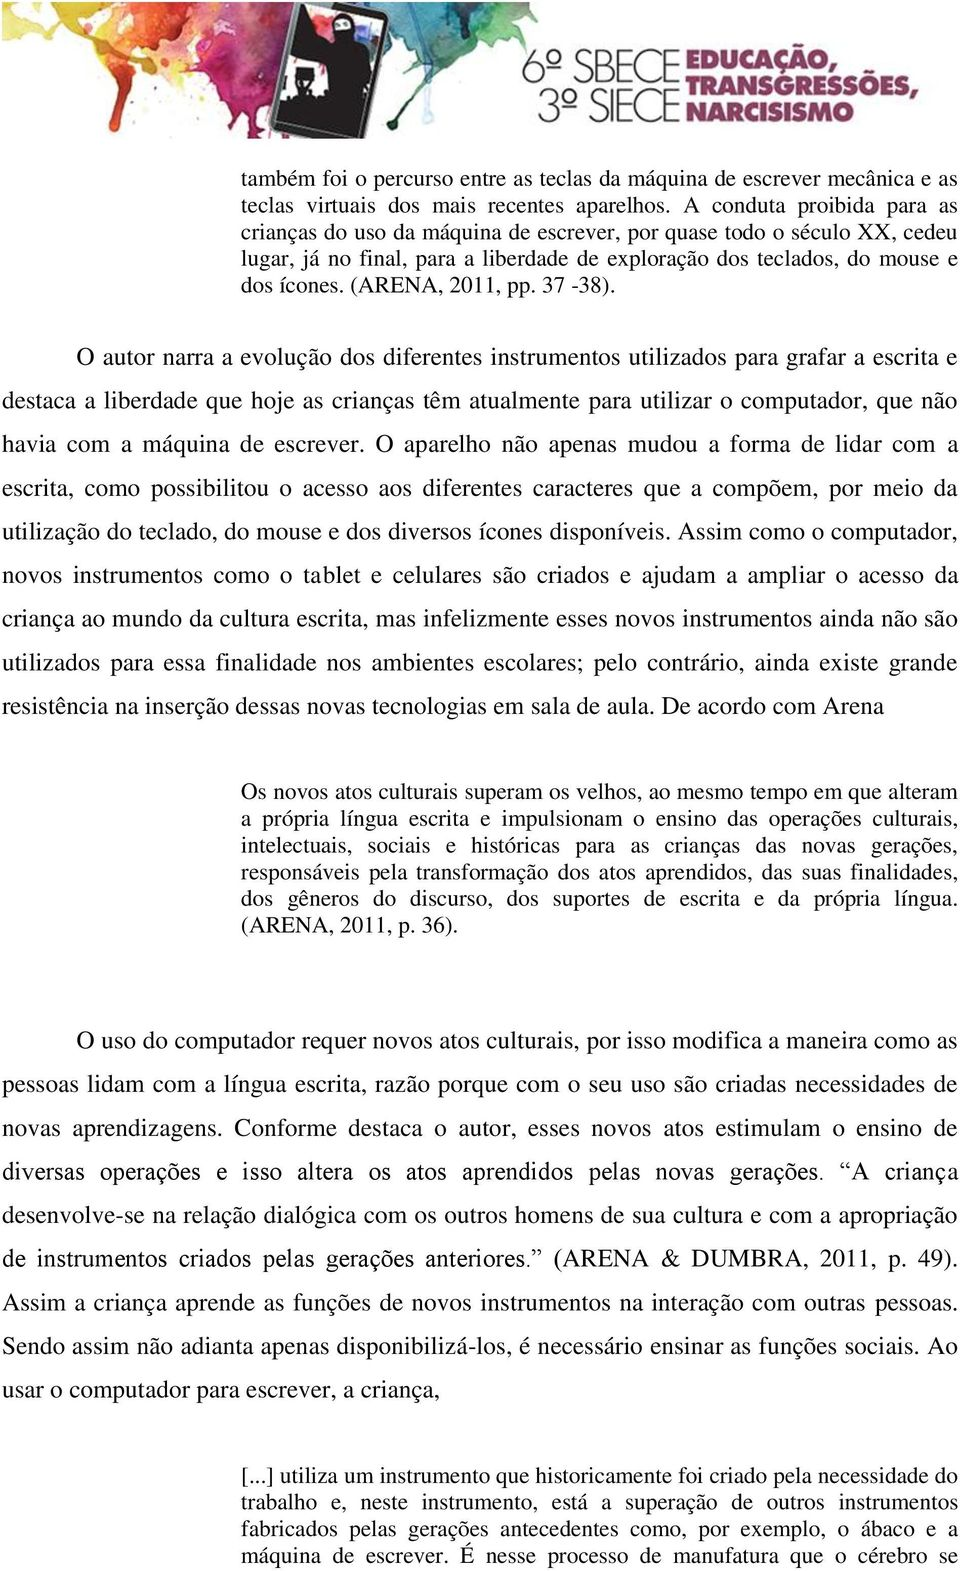 (ARENA, 2011, pp. 37-38).